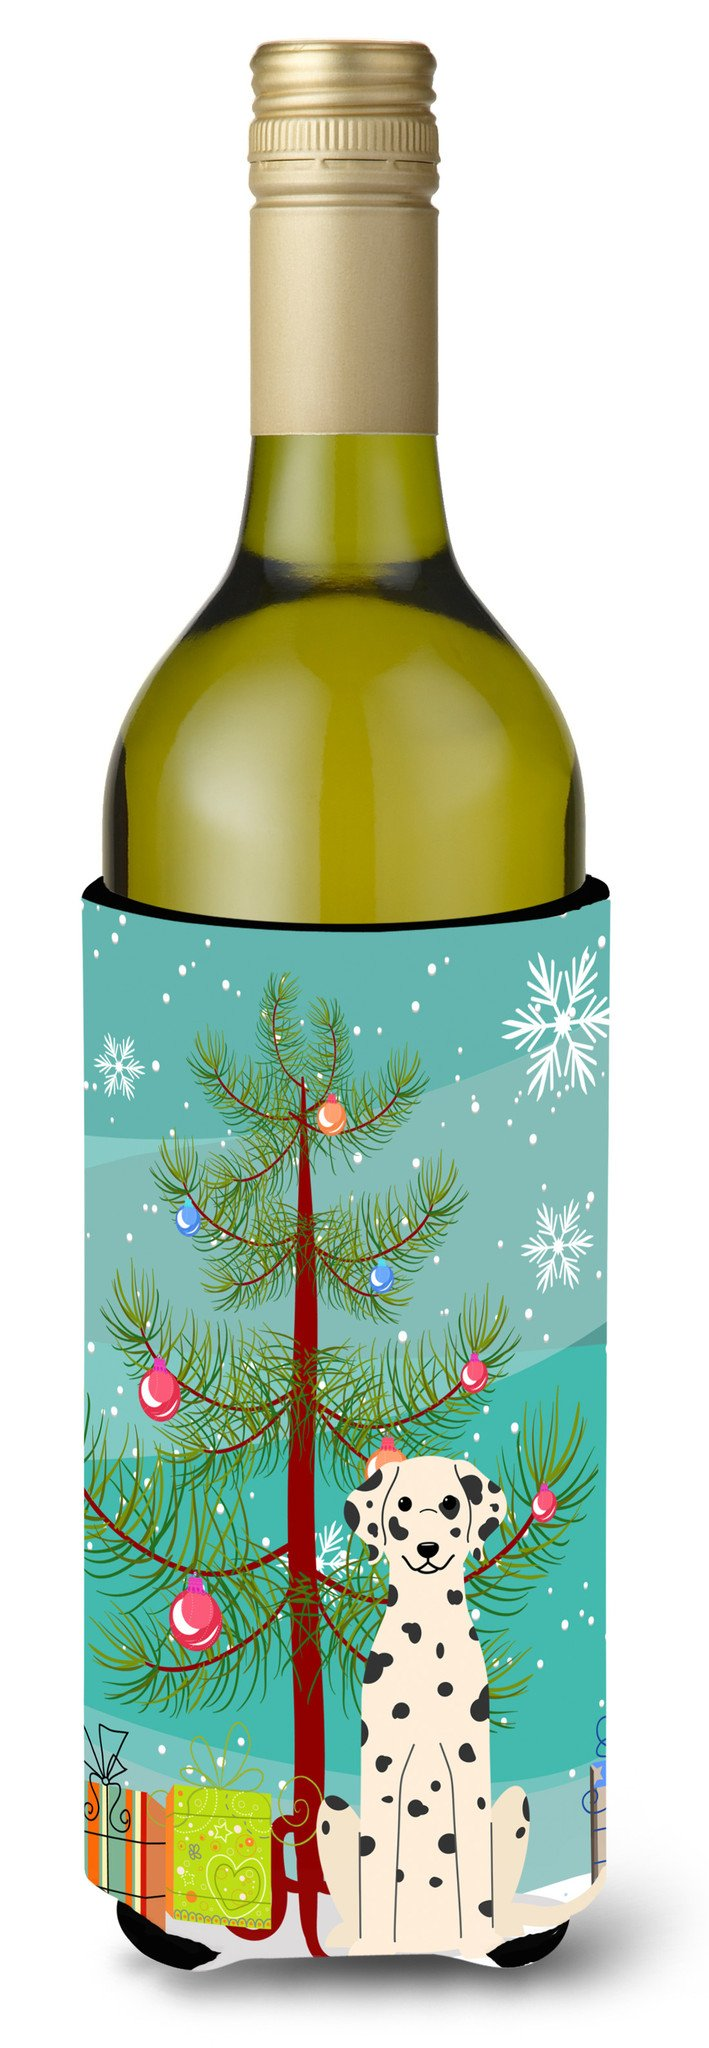 Merry Christmas Tree Dalmatian Wine Bottle Beverge Insulator Hugger BB4222LITERK by Caroline's Treasures